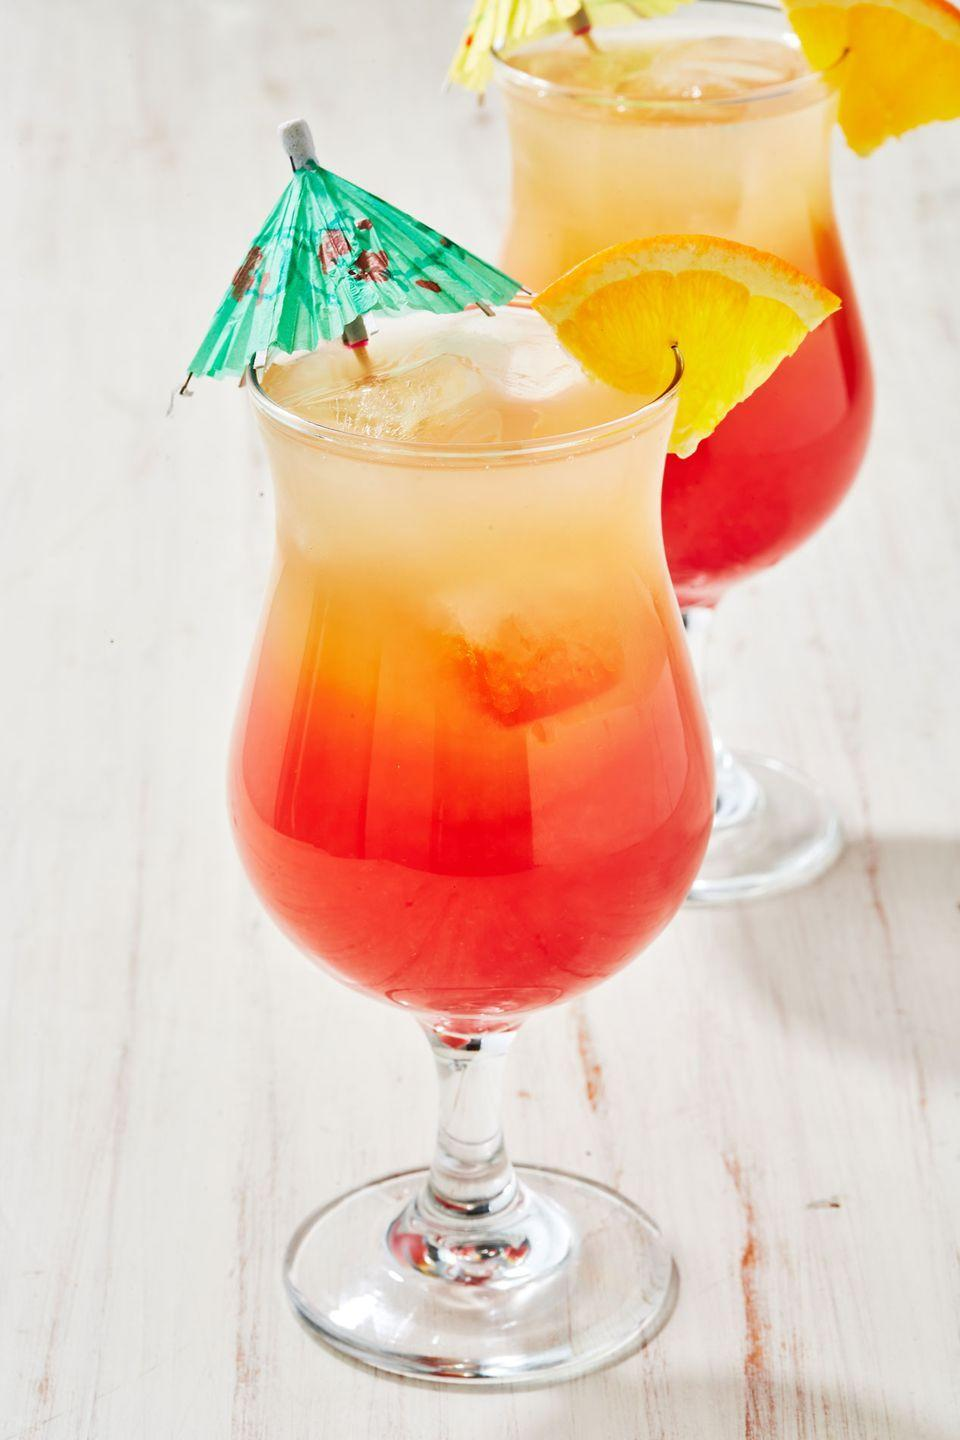 """<p>It will give you those beach vibes, for sure. </p><p>Get the recipe from <a href=""""https://www.delish.com/cooking/recipe-ideas/a30275456/sex-on-the-beach-cocktail-recipe/"""" rel=""""nofollow noopener"""" target=""""_blank"""" data-ylk=""""slk:Delish"""" class=""""link rapid-noclick-resp"""">Delish</a>.</p>"""